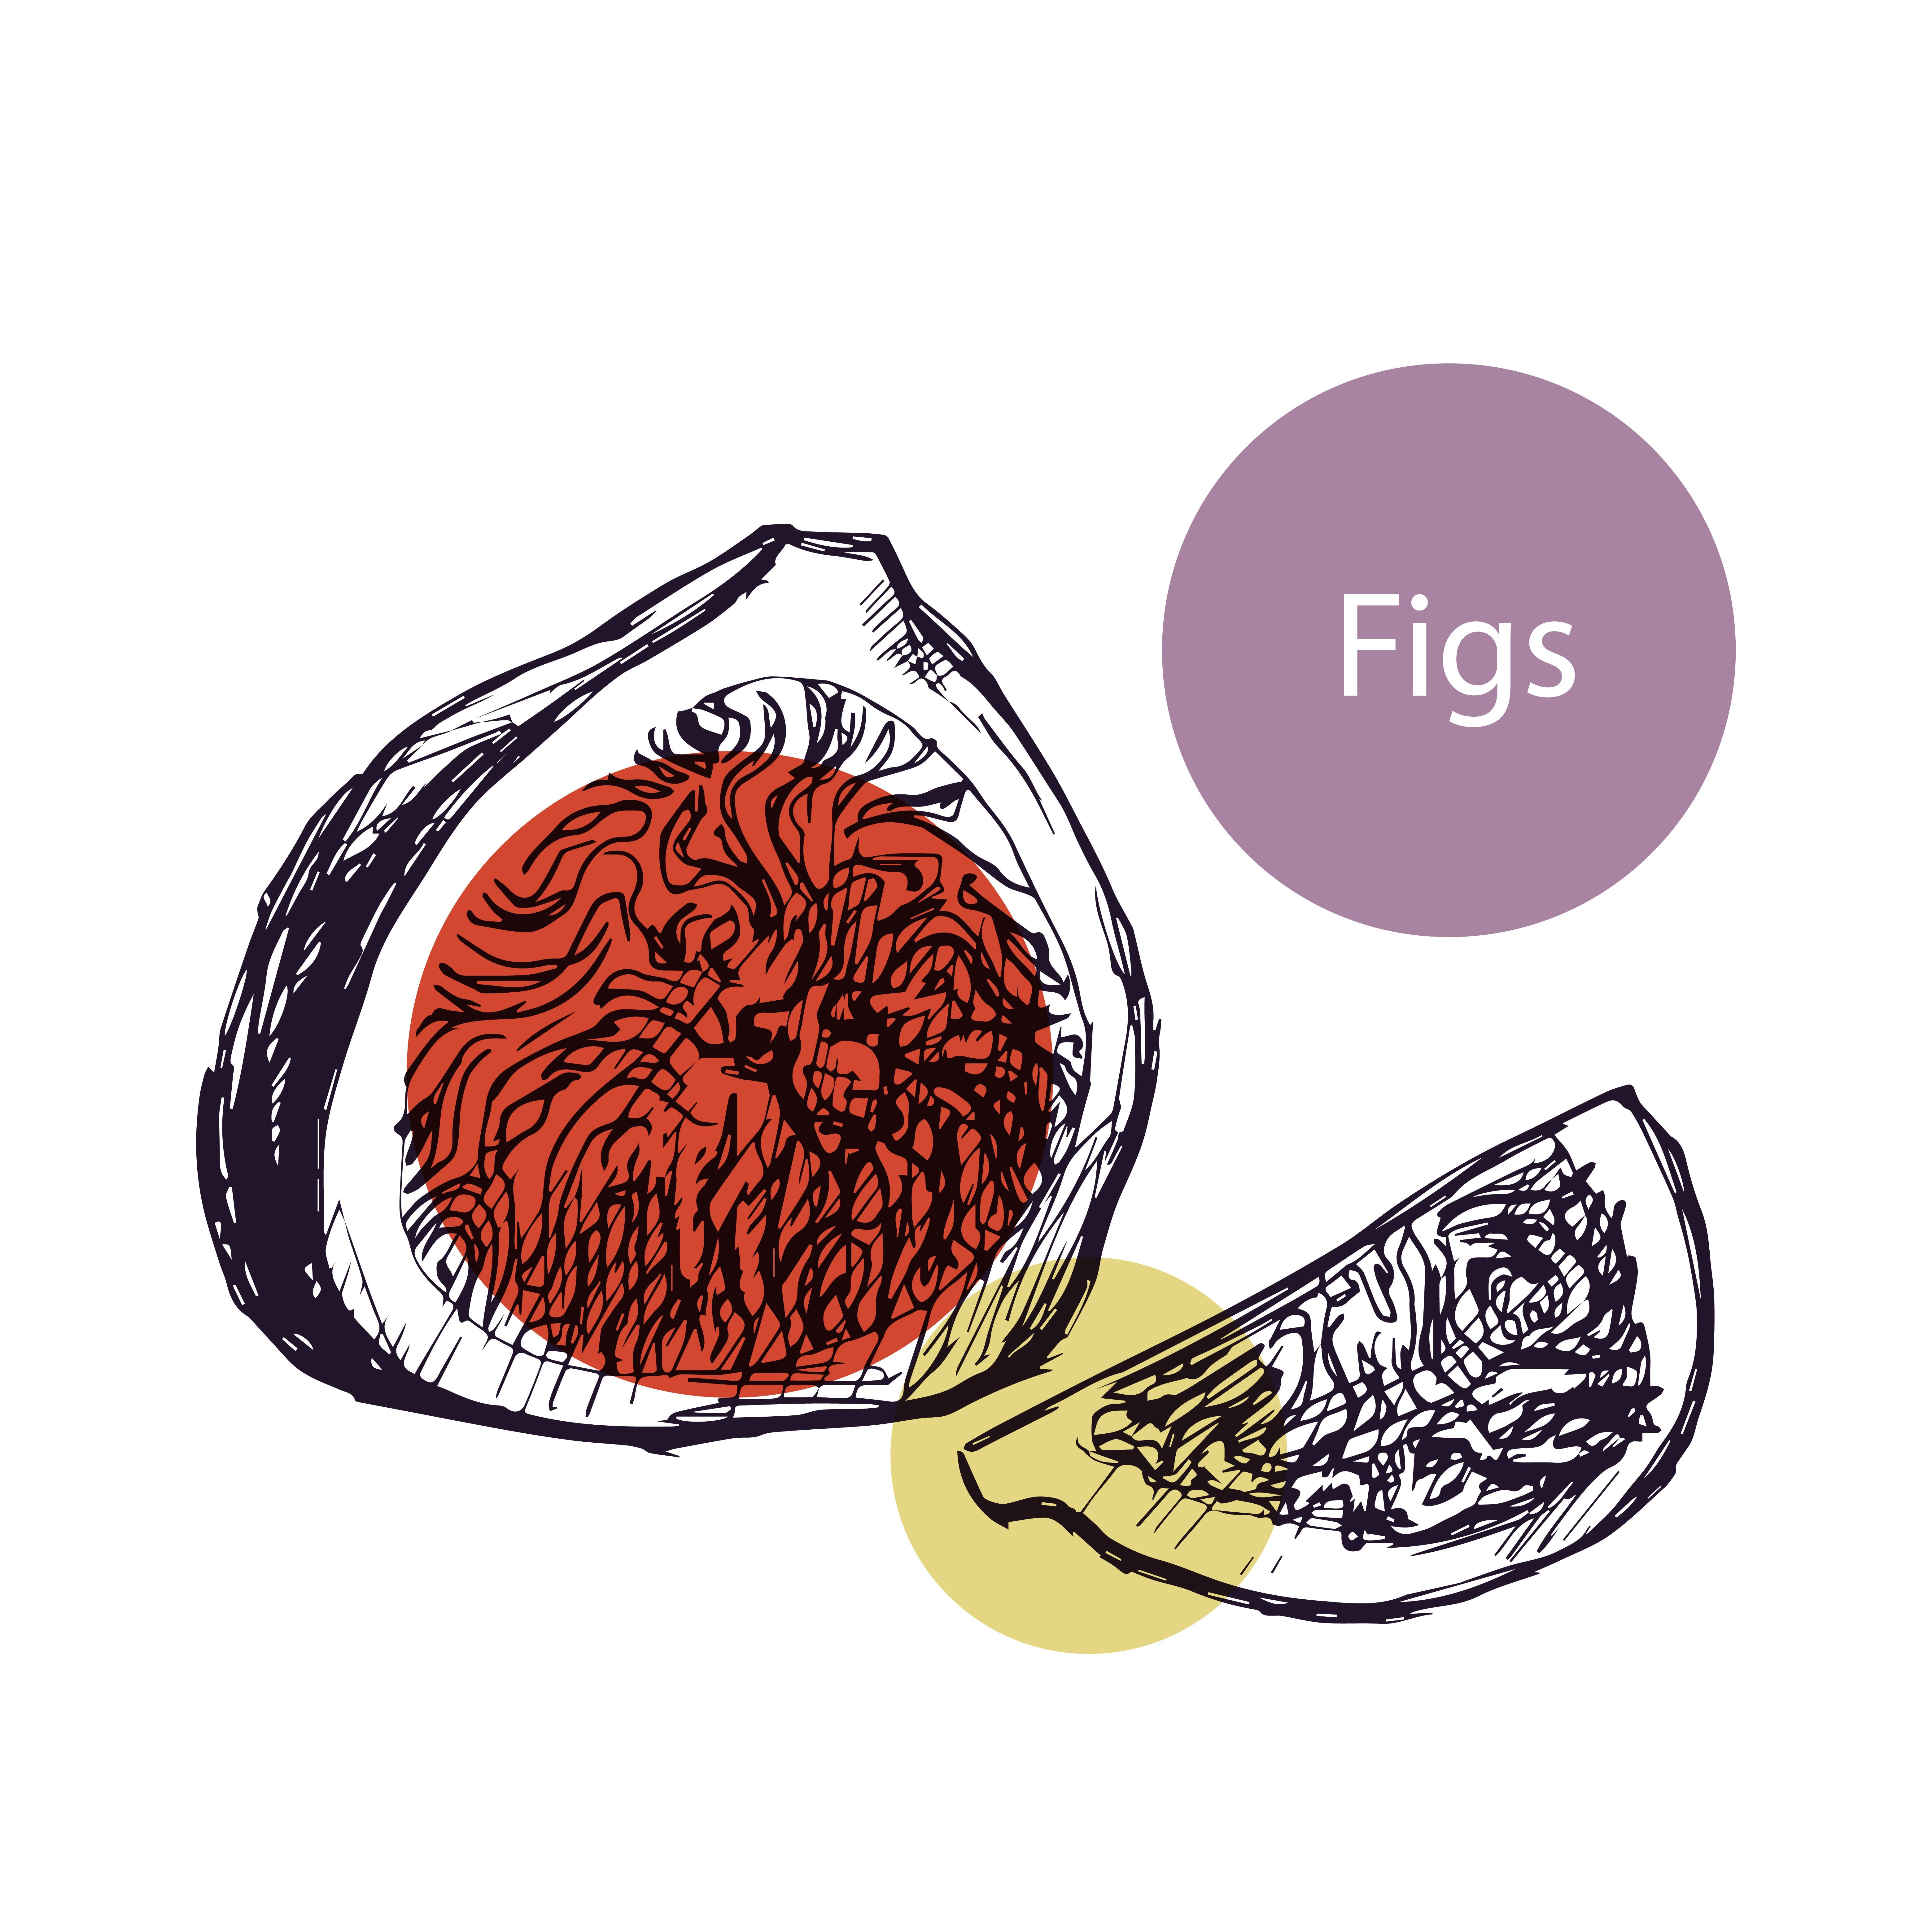 figs whole and half graphic illustration with colorful spots of purple brown yellow